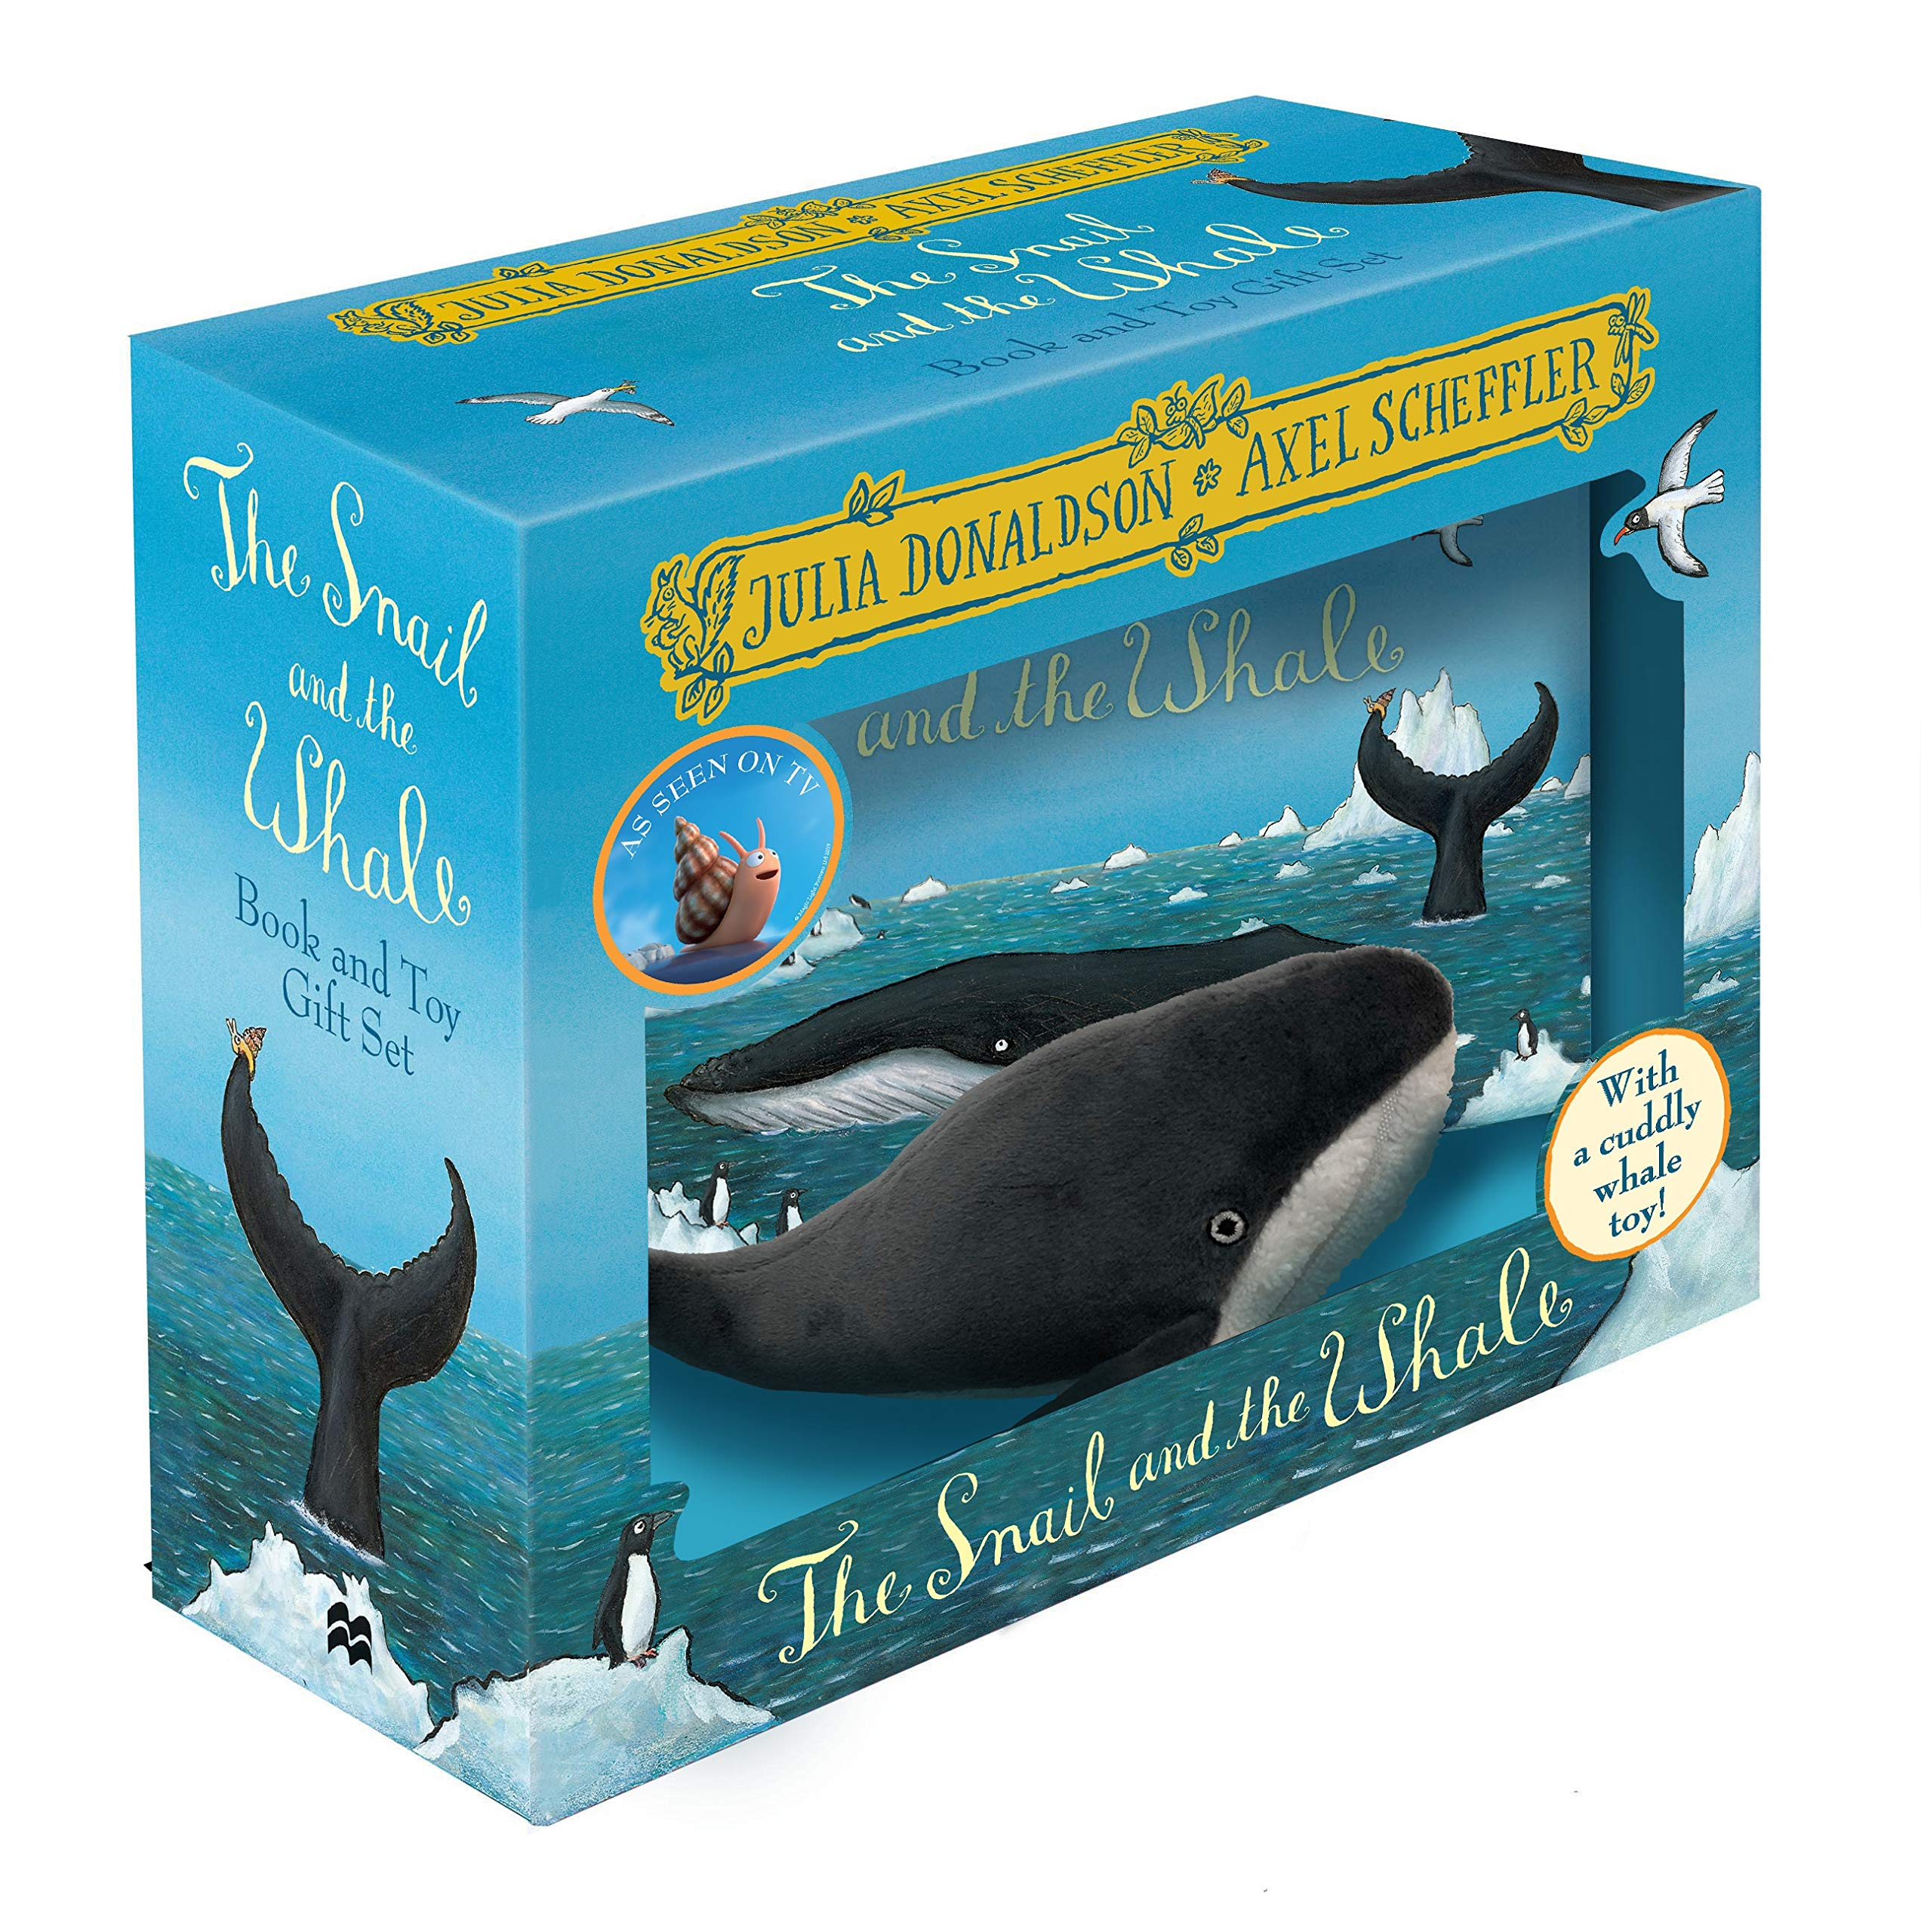 The Snail and the Whale: Book and Toy Gift Set (Book & Toy Gift Set) 54% OFF £6 @ Amazon